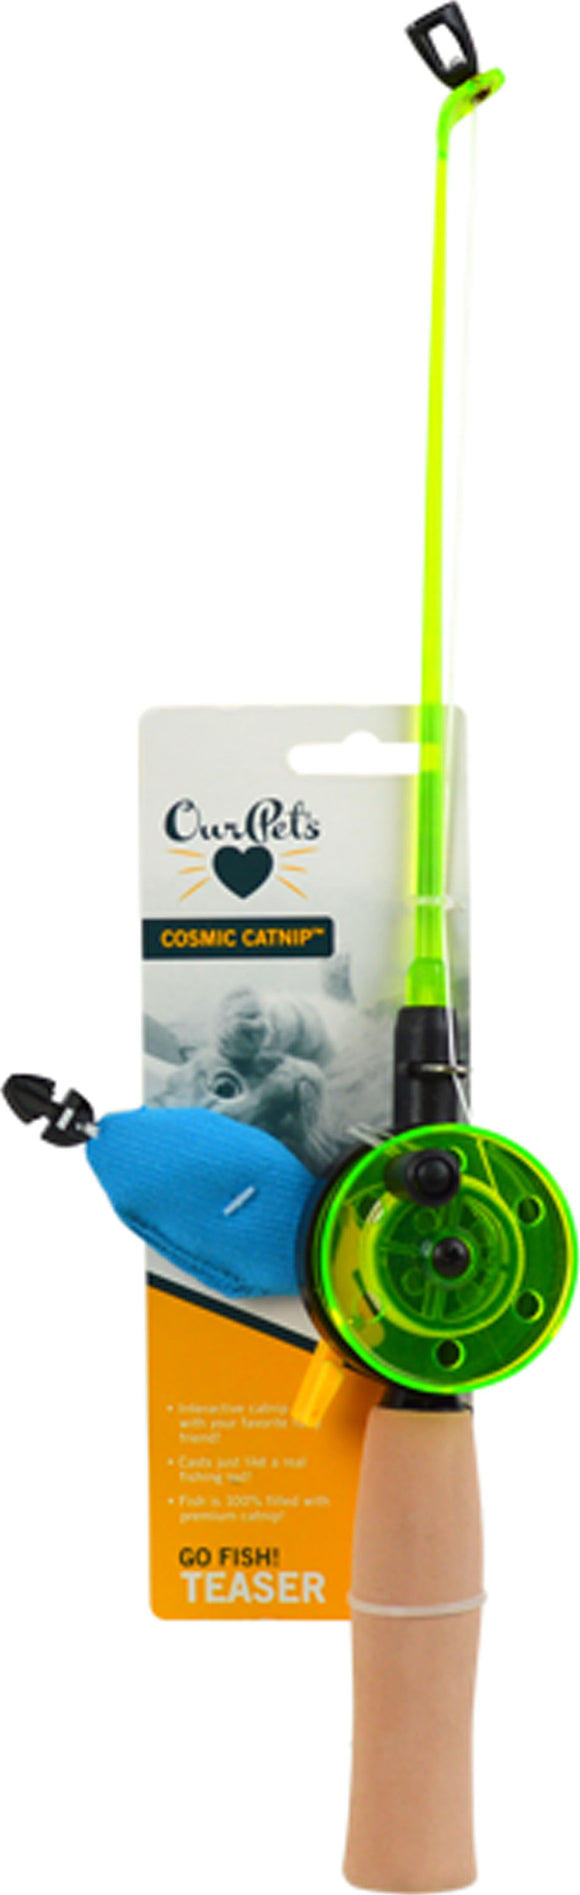 Ourpets Company - Go Fish! Fishing Rod With Catnip Fish